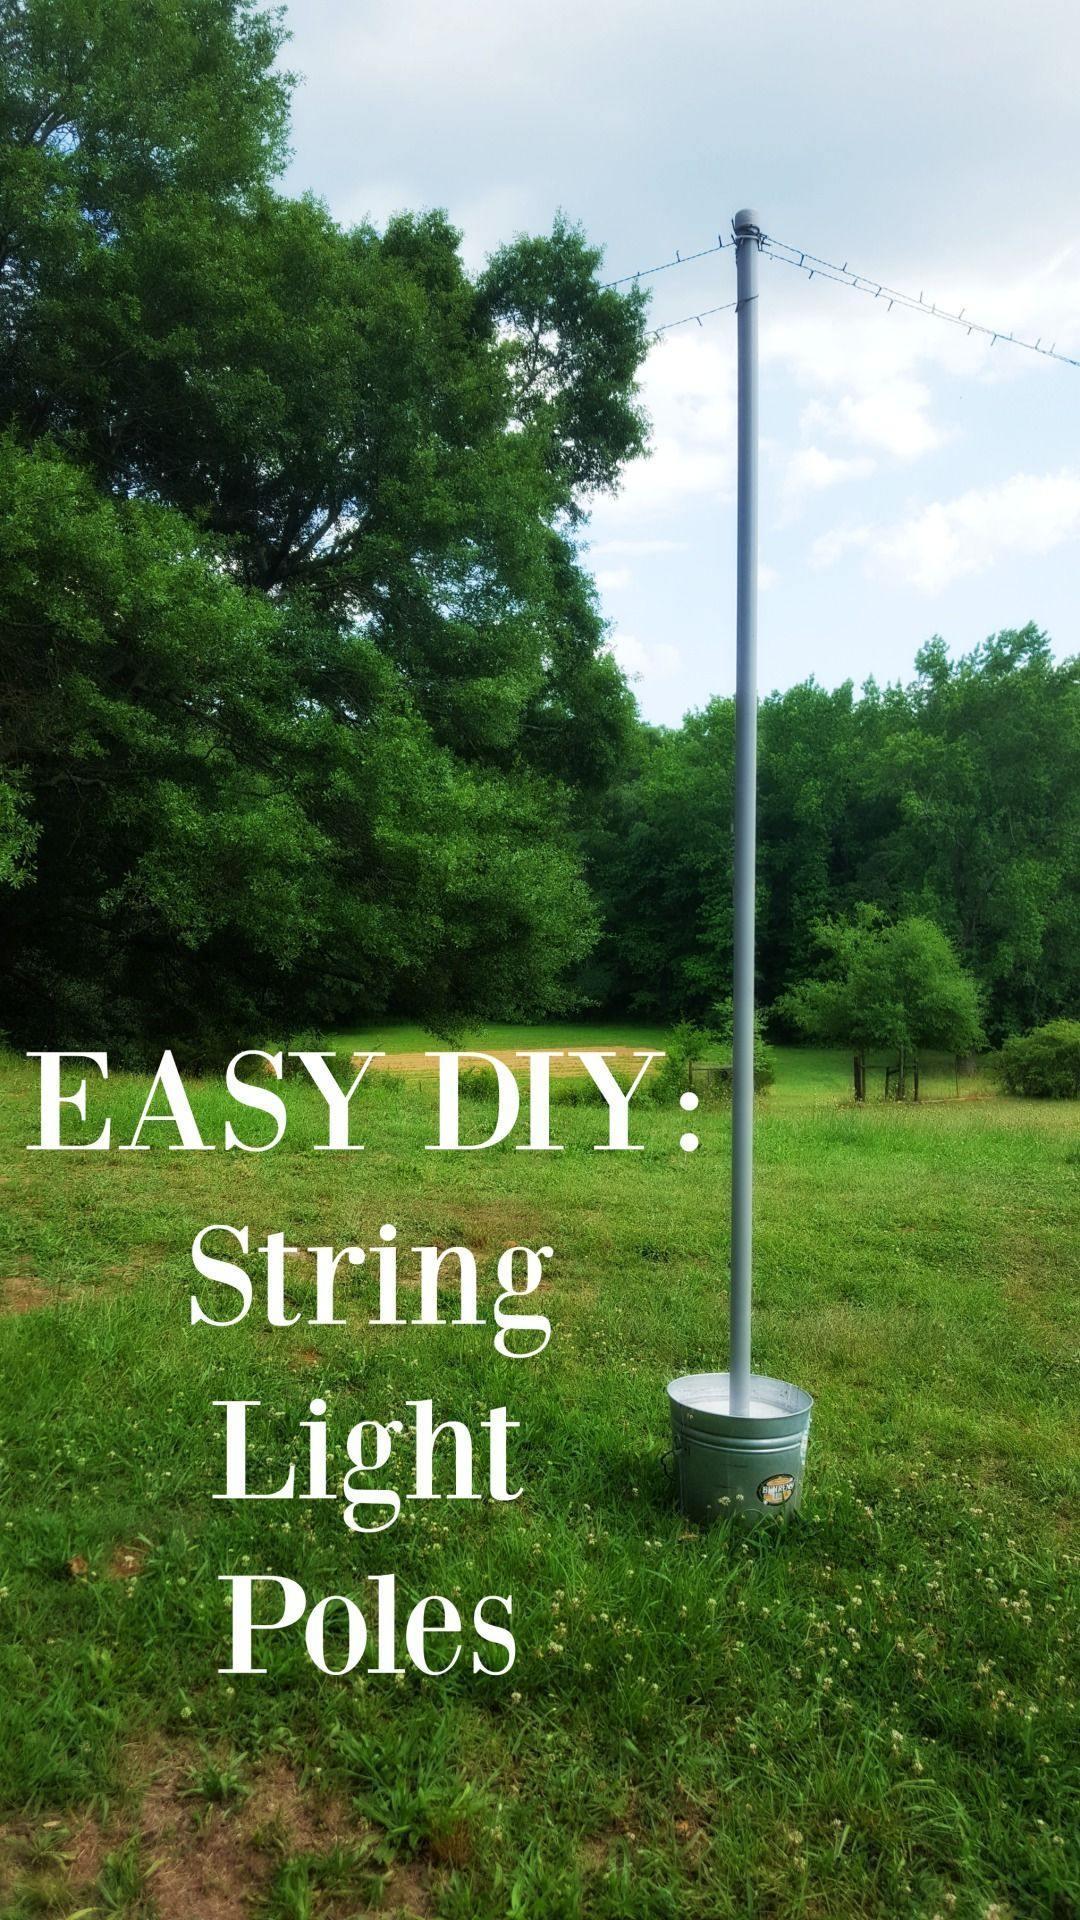 mobile string light poles easy diy pinterest easy lights and